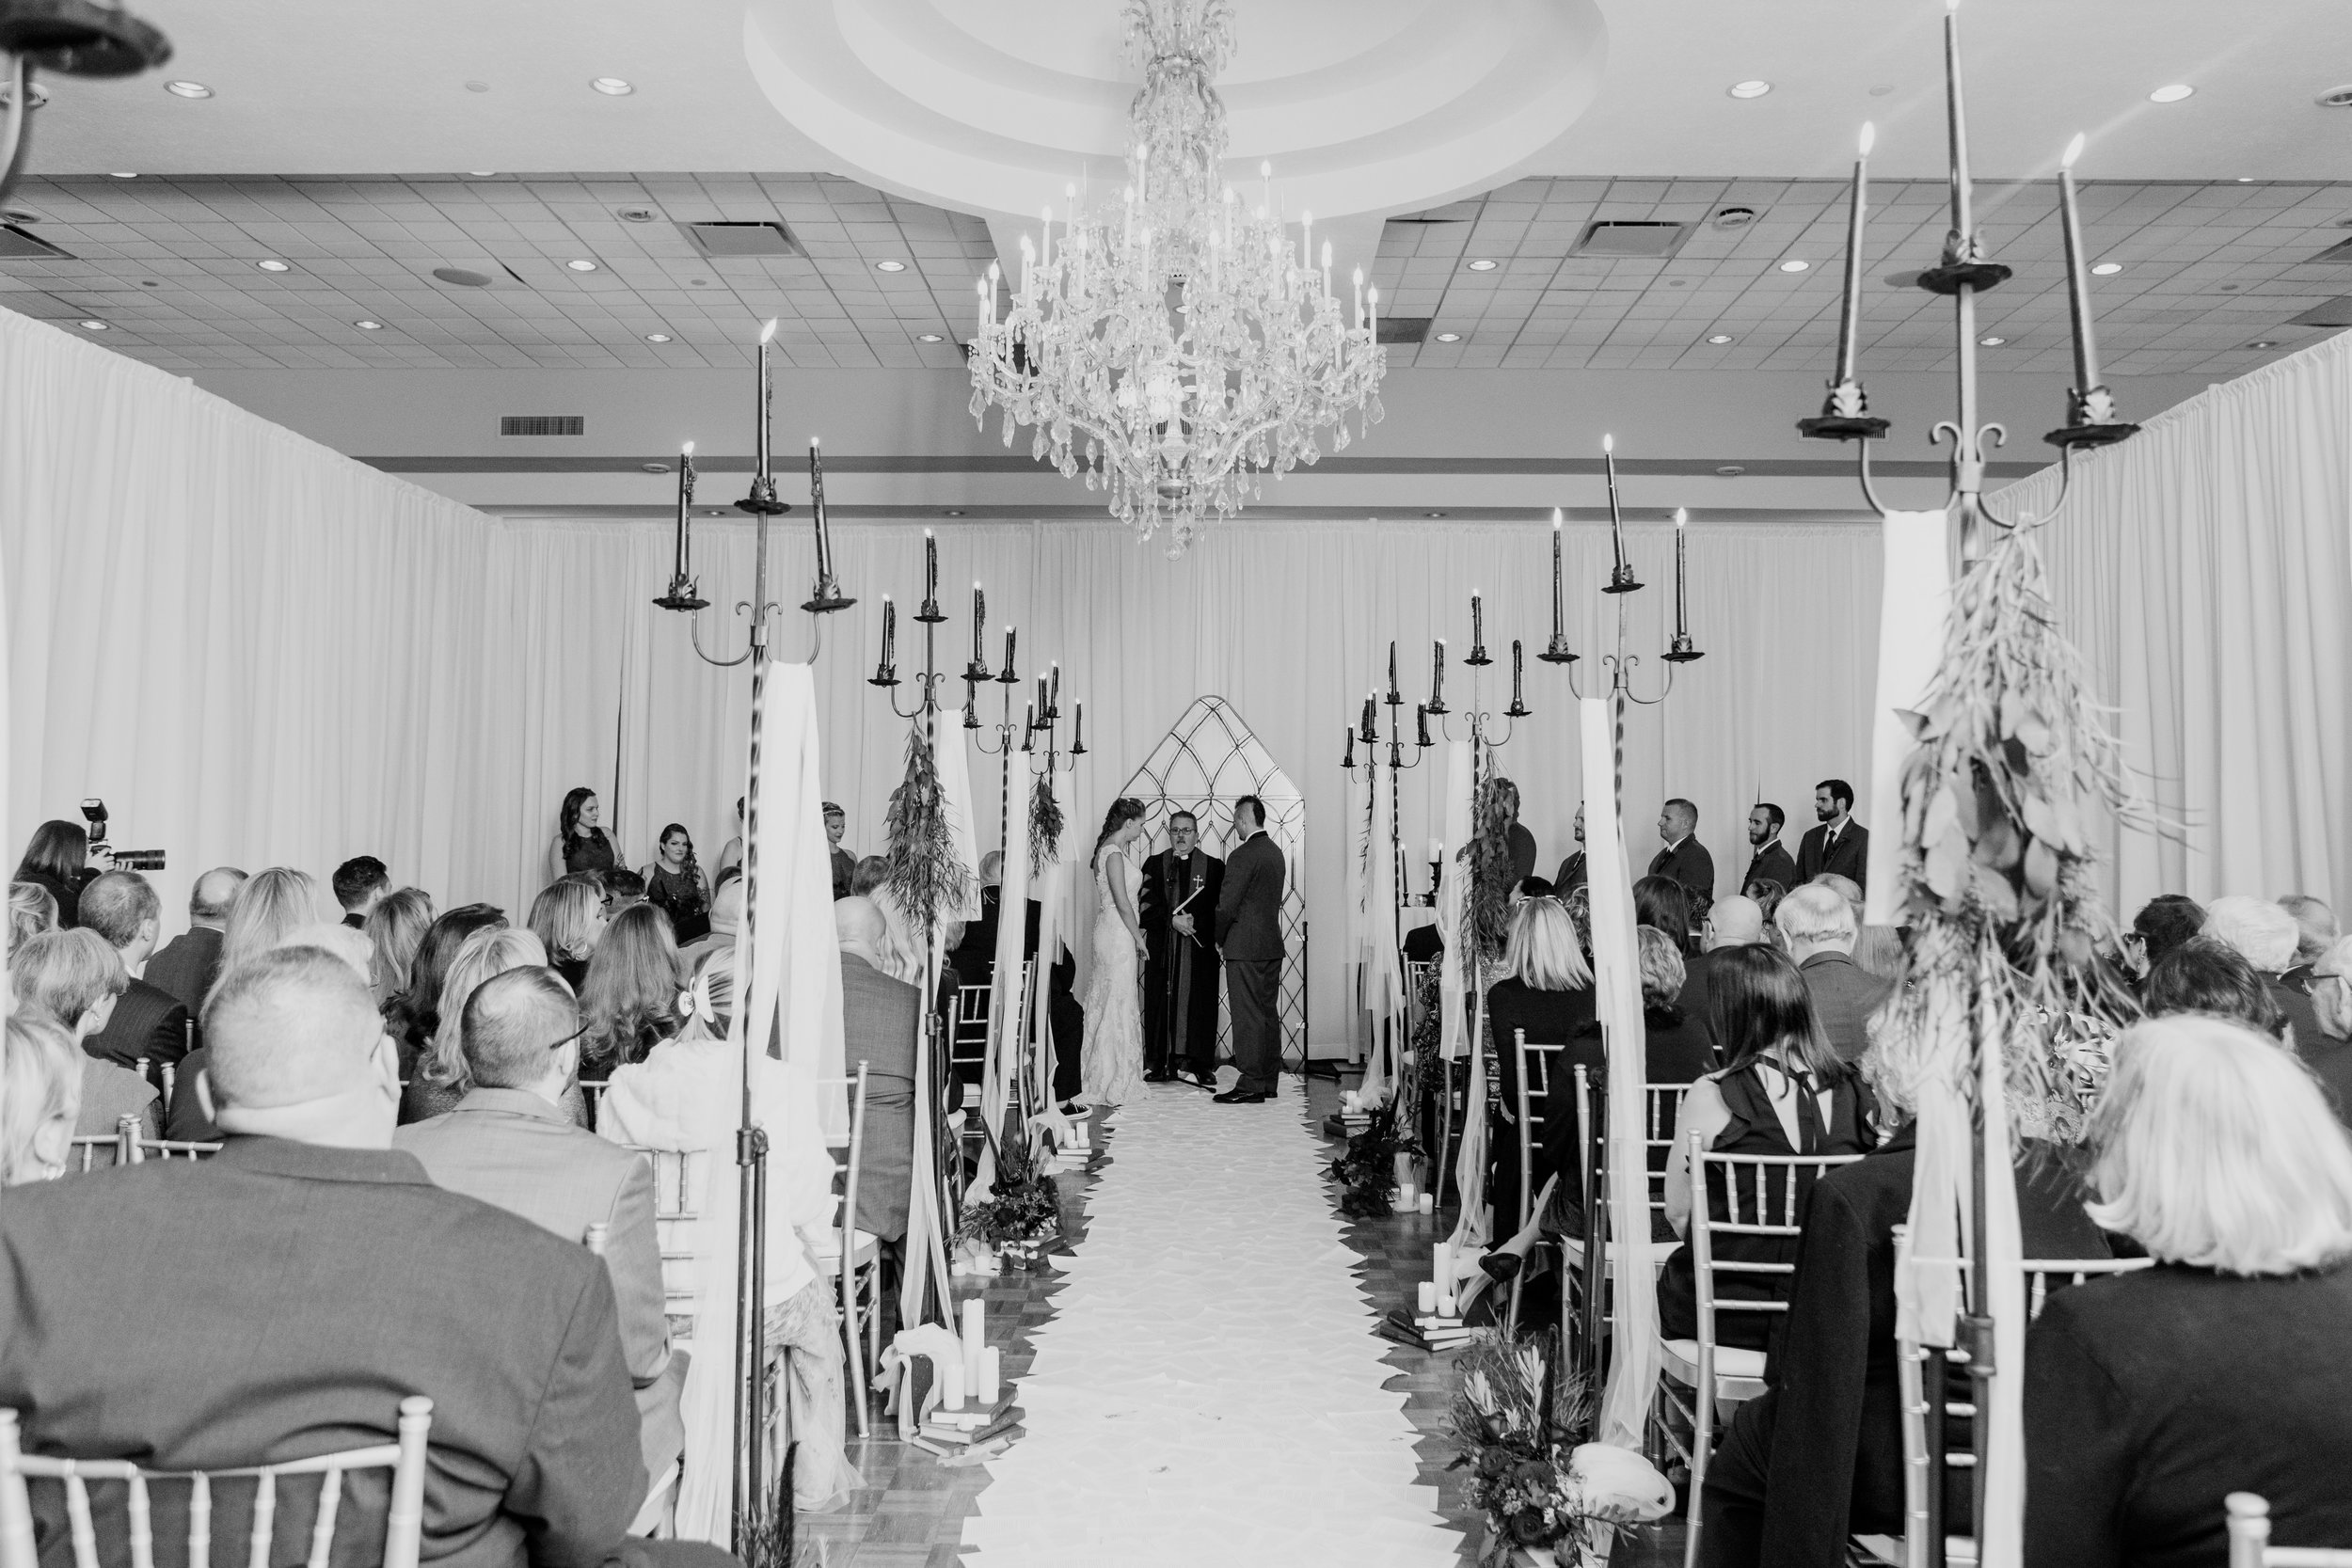 Book page aisle runner beauty and the beast inspired wedding ceremony at Buona Sera Palazzo